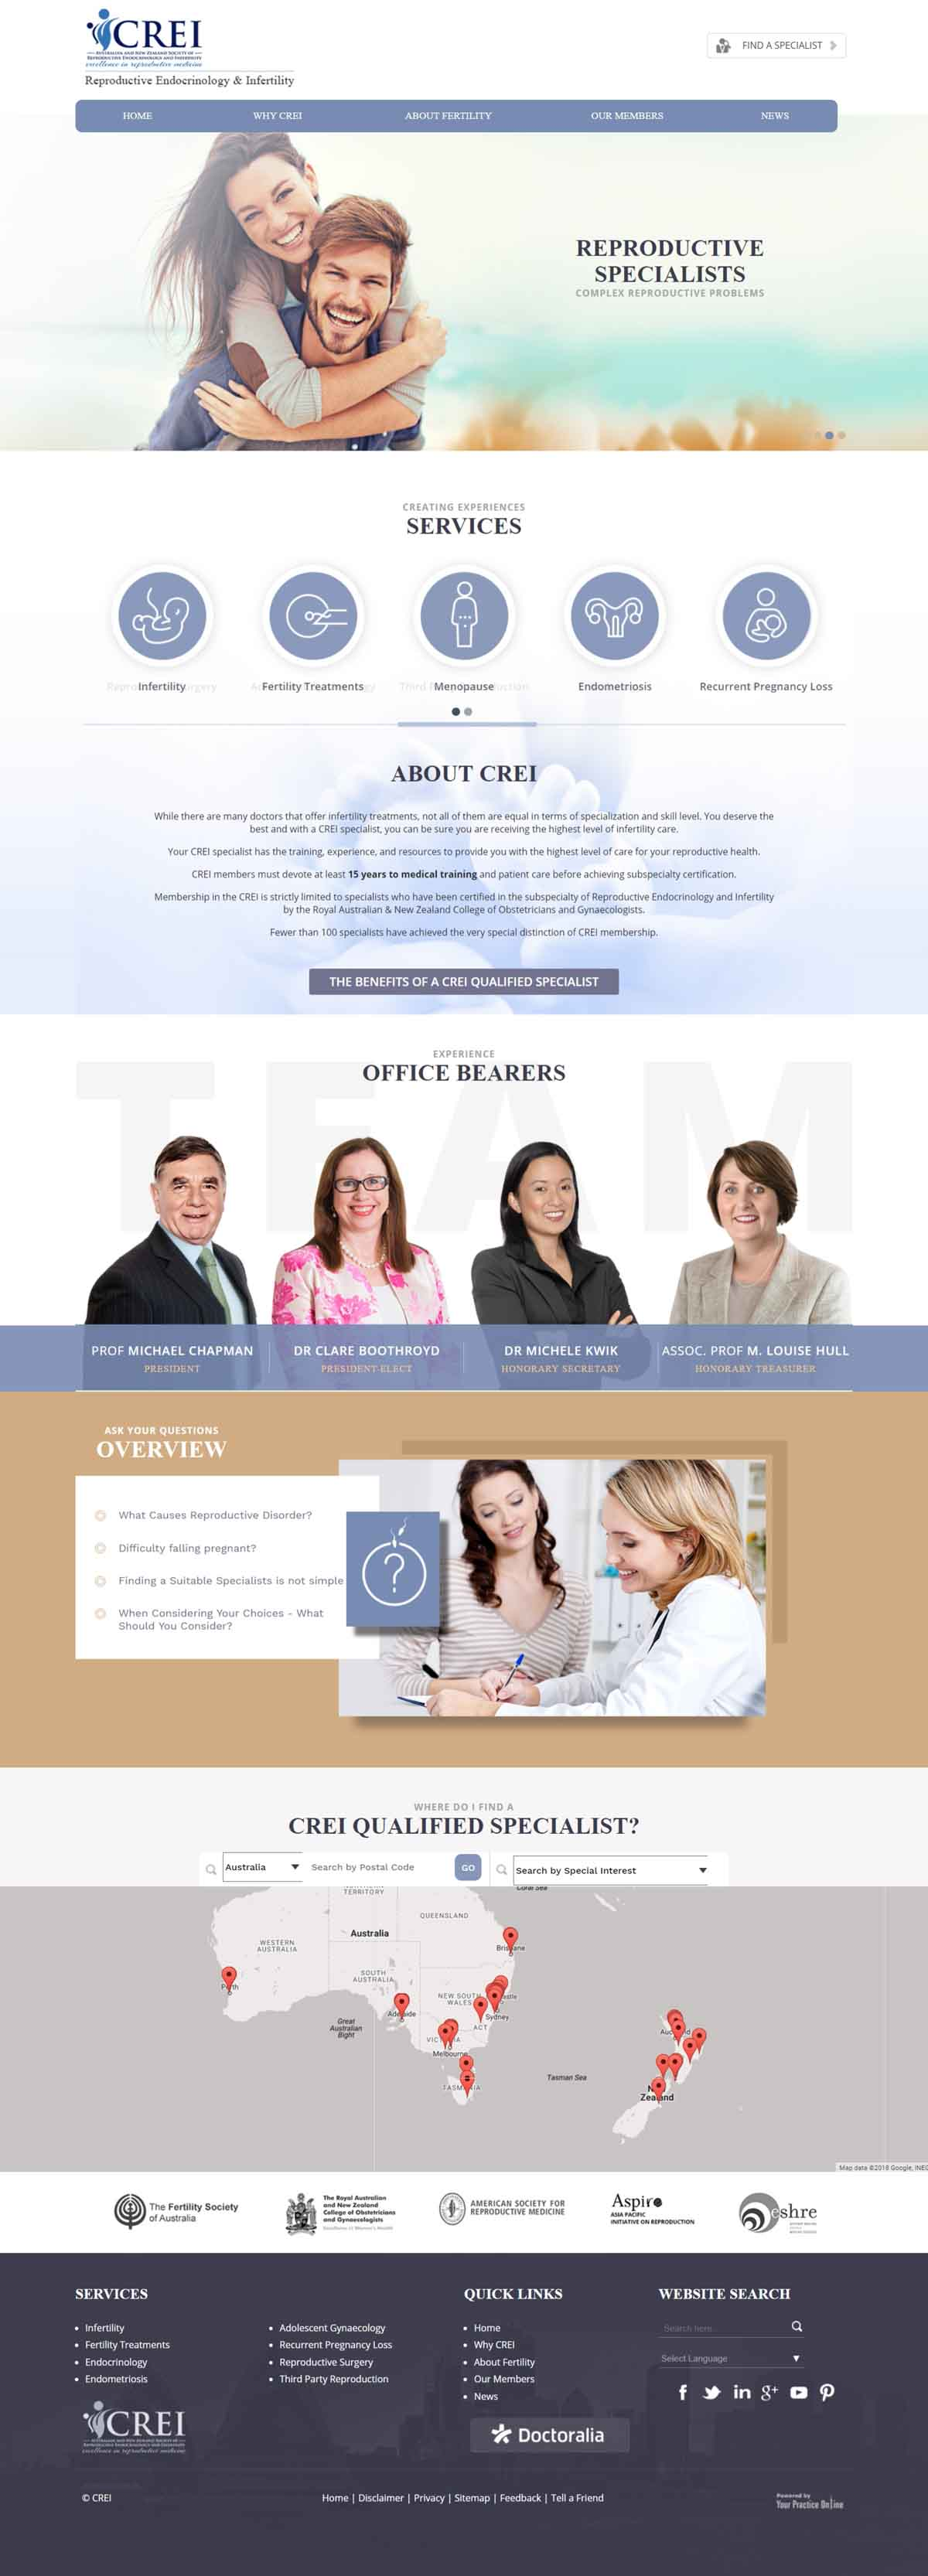 Fertility Specialist Website Australia